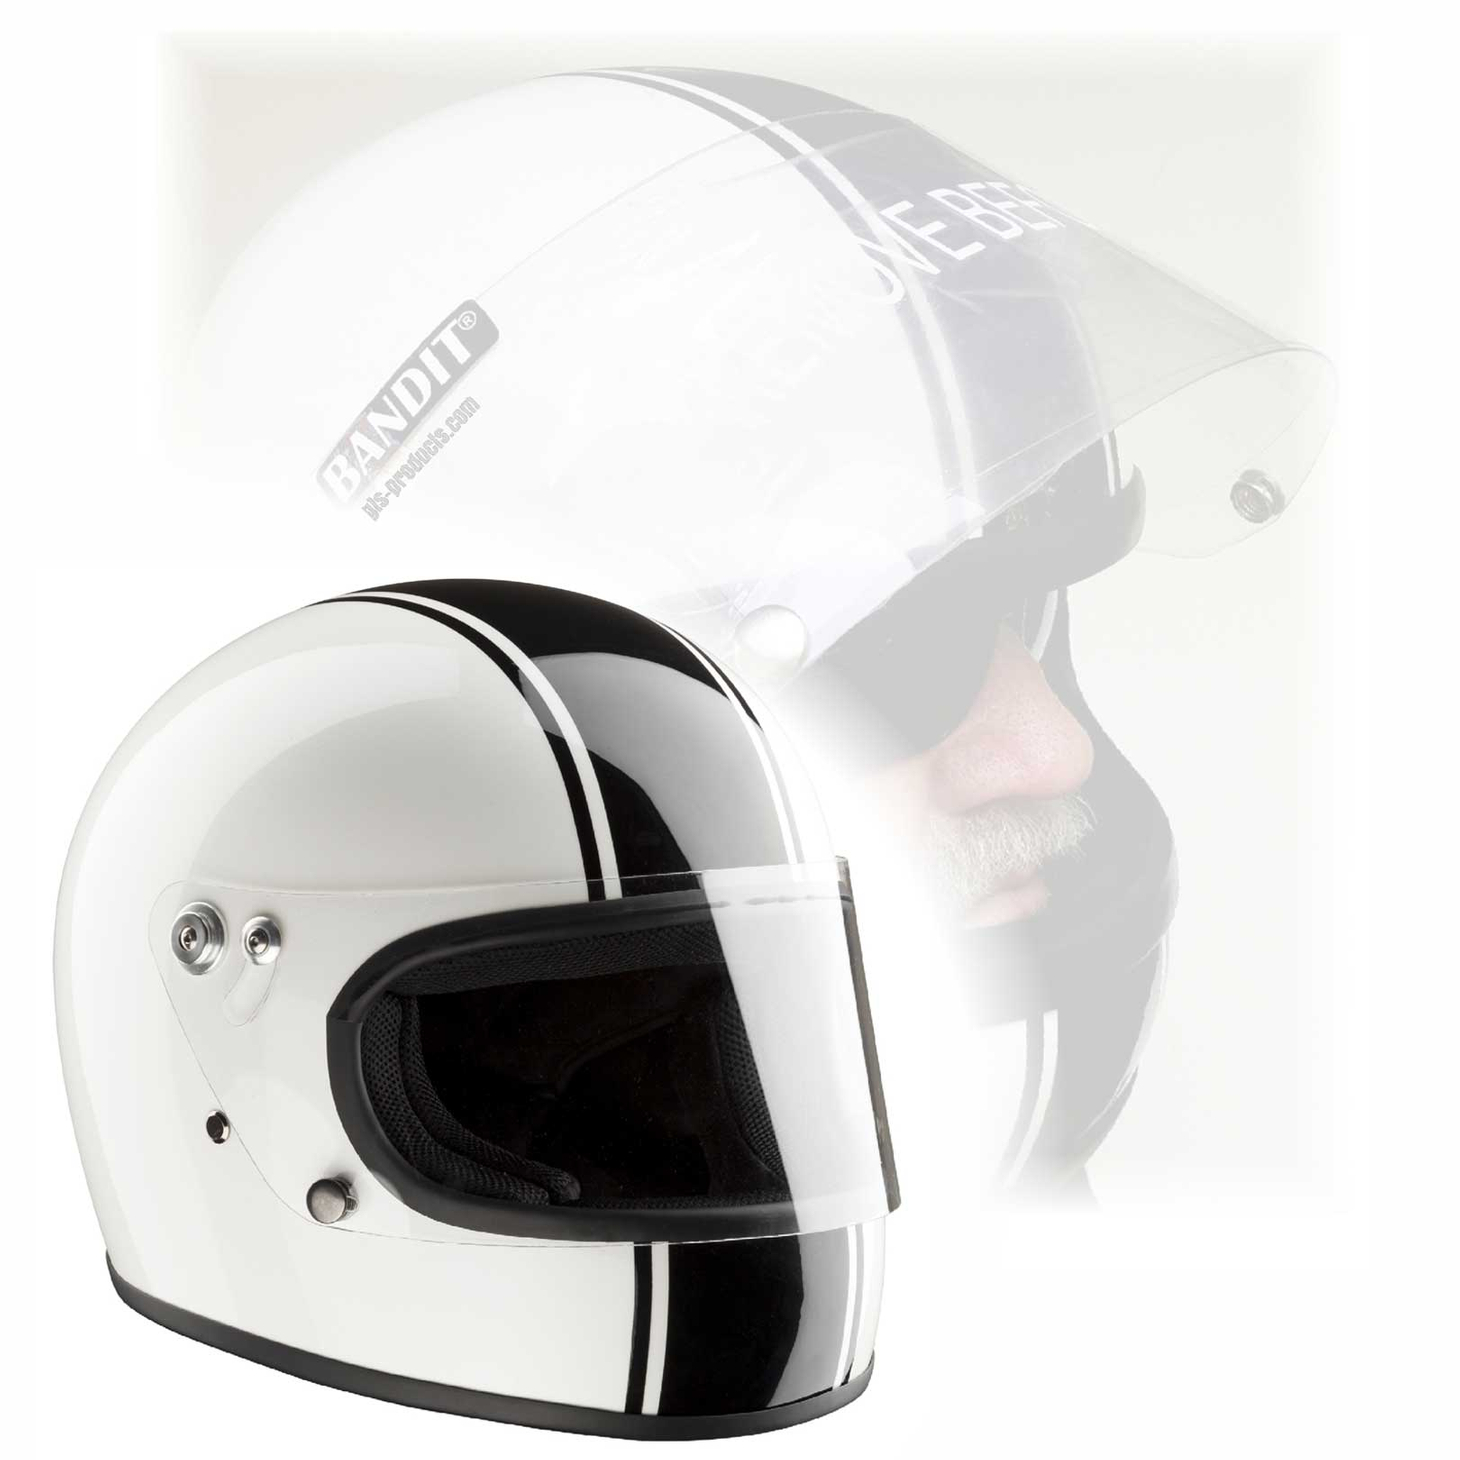 Bandit Integral ECE 22-05 homologated Retro Motorcycle Helmet – Picture 1